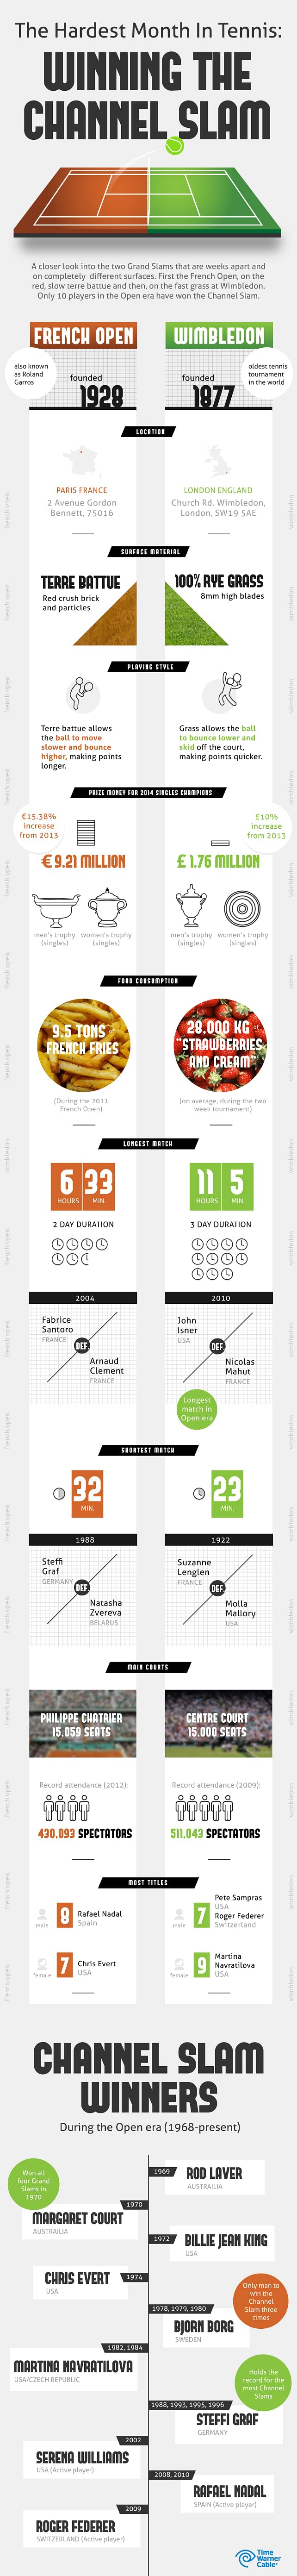 Infographic: How difficult is it to win the French Open and Wimbledon back-to-back?